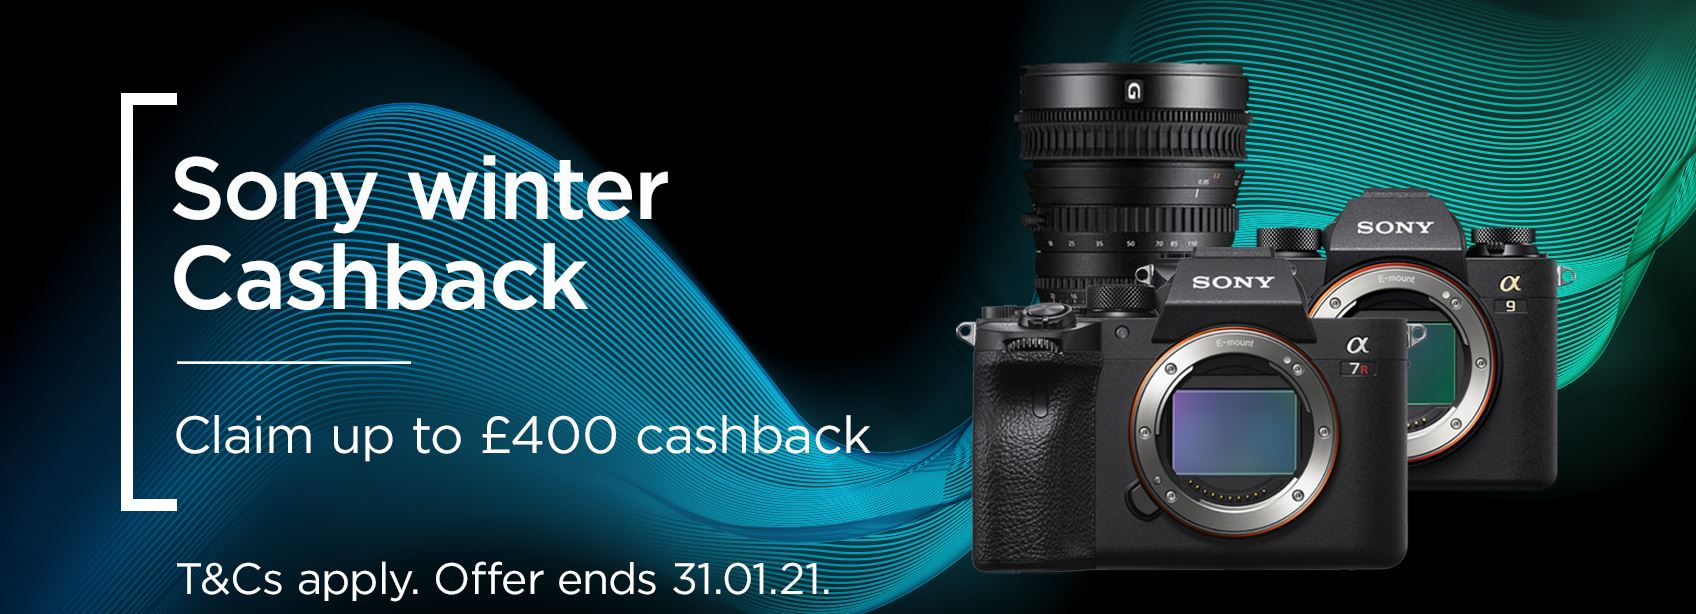 Sony Winter Cashback - Claim up to £400